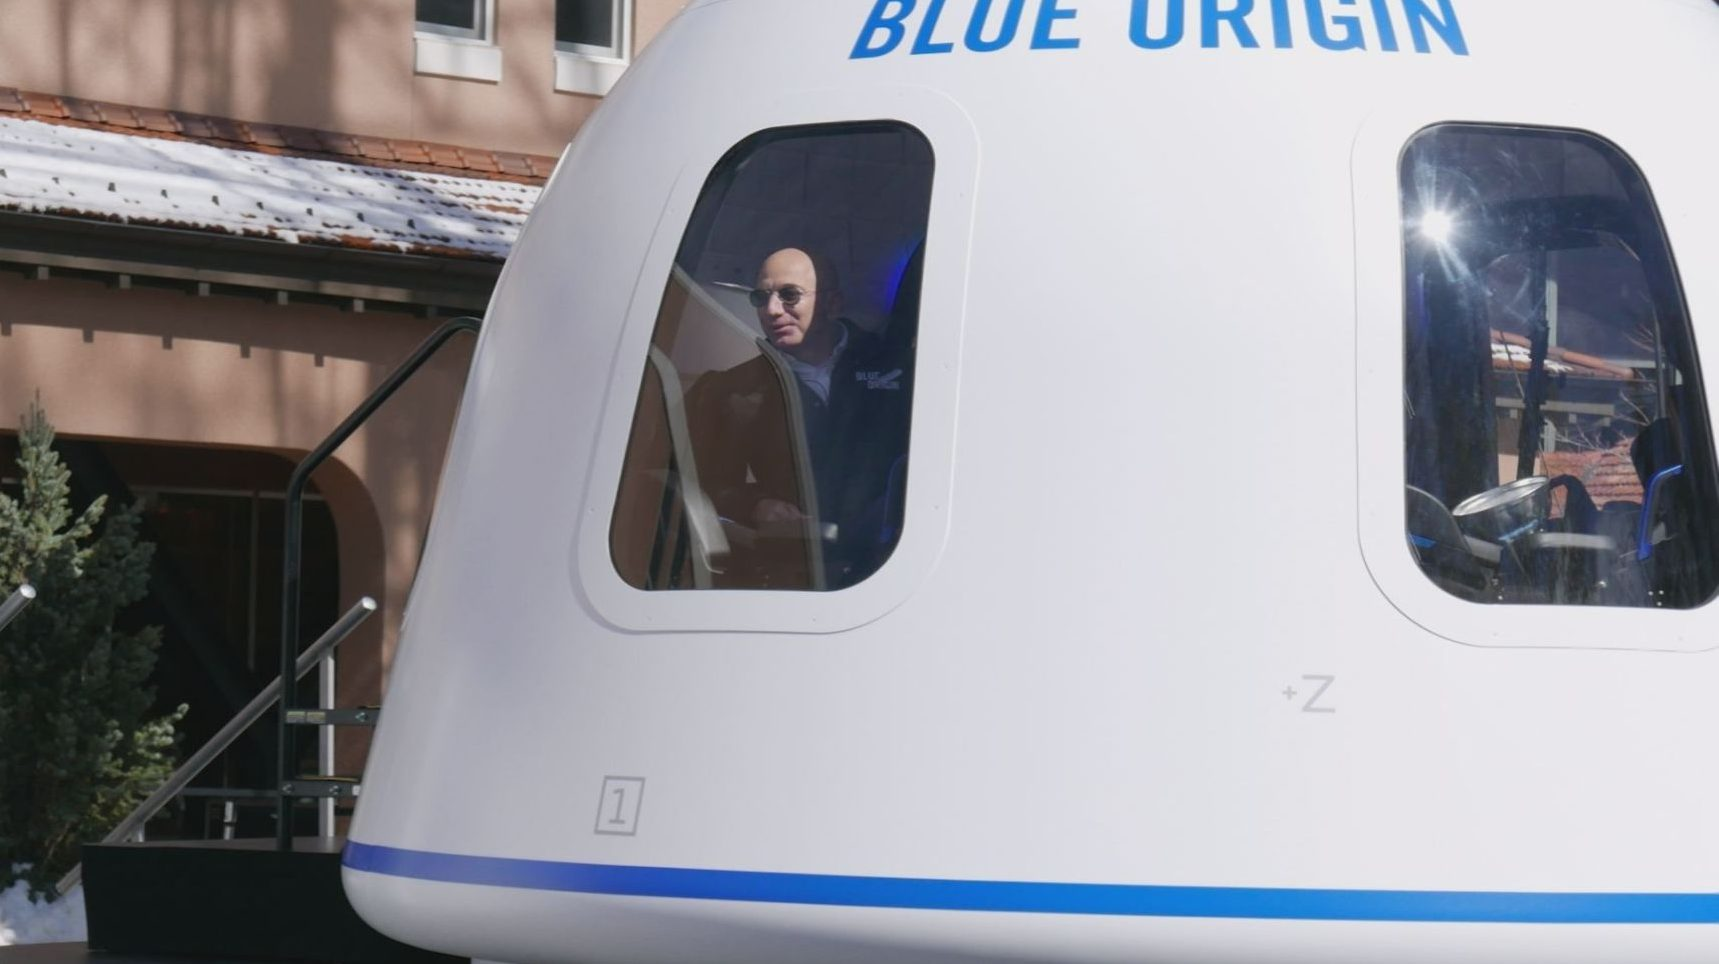 Jeff Bezos Spaceship Blue Origin